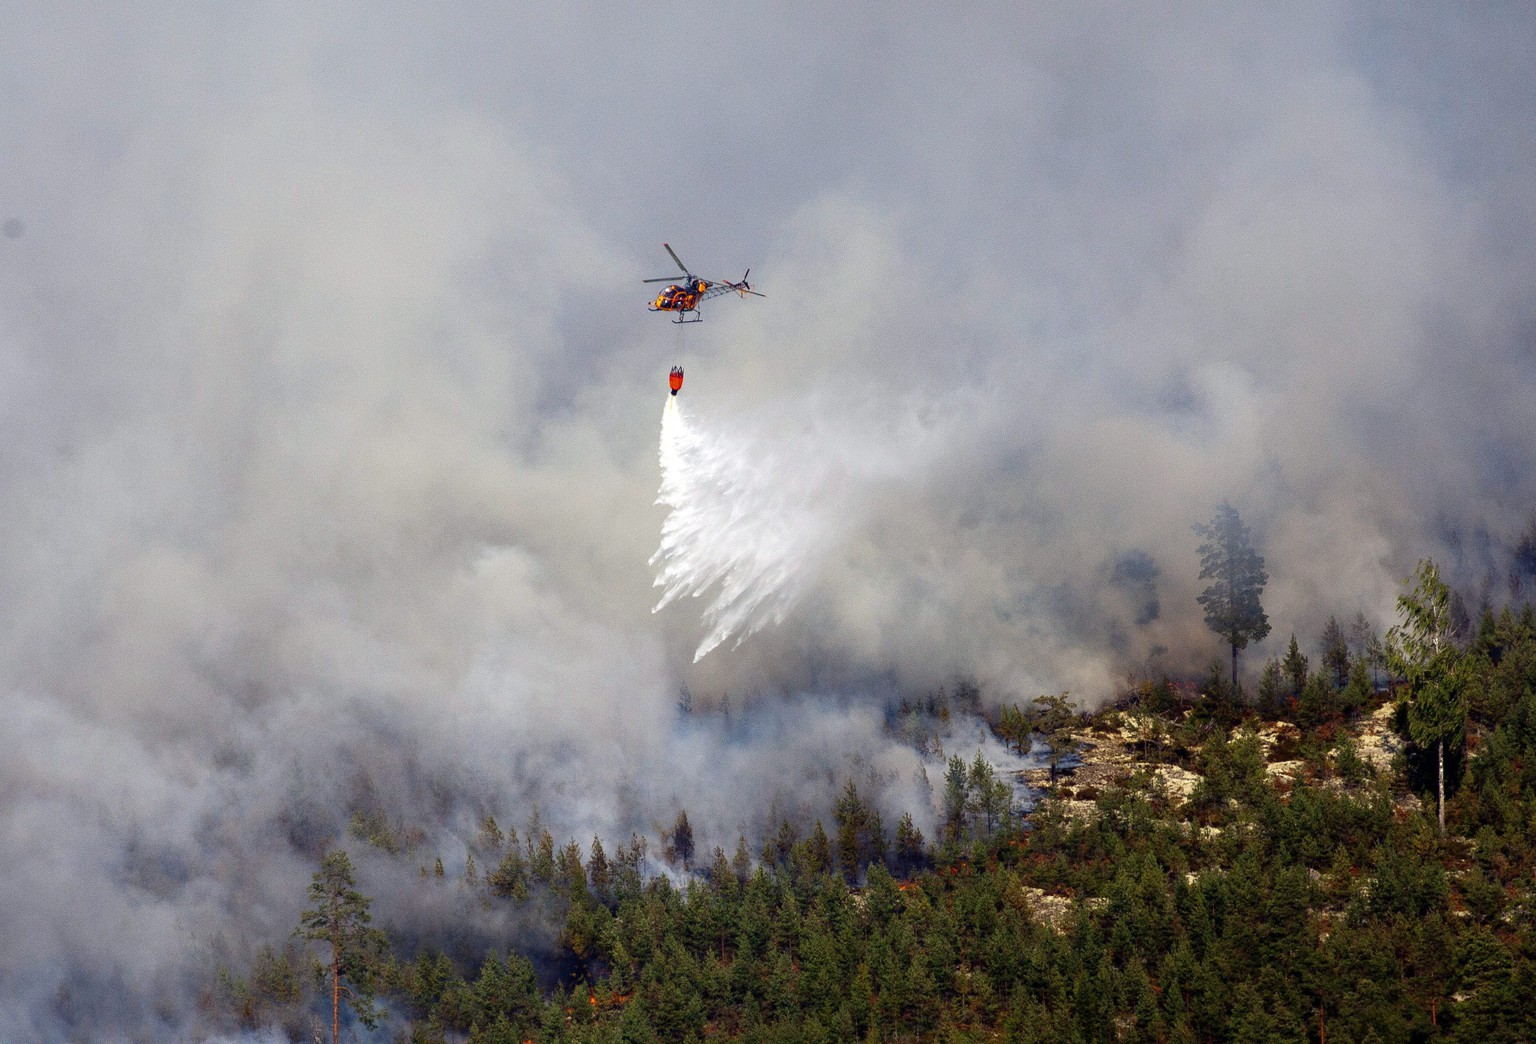 epa04340805 A photograph made available on 04 August 2014 shows a helicopter dumping water on the wildfire in the village of Rorbo near Sala, Sweden, 03 August 2014. The fire, covering thousands of hectares, is in its fifth day and firefighters believe it will burn for weeks or even months. It is classified as the worst forest fire in Sweden's modern history.  EPA/JOCKE BERGLUND SWEDEN OUT